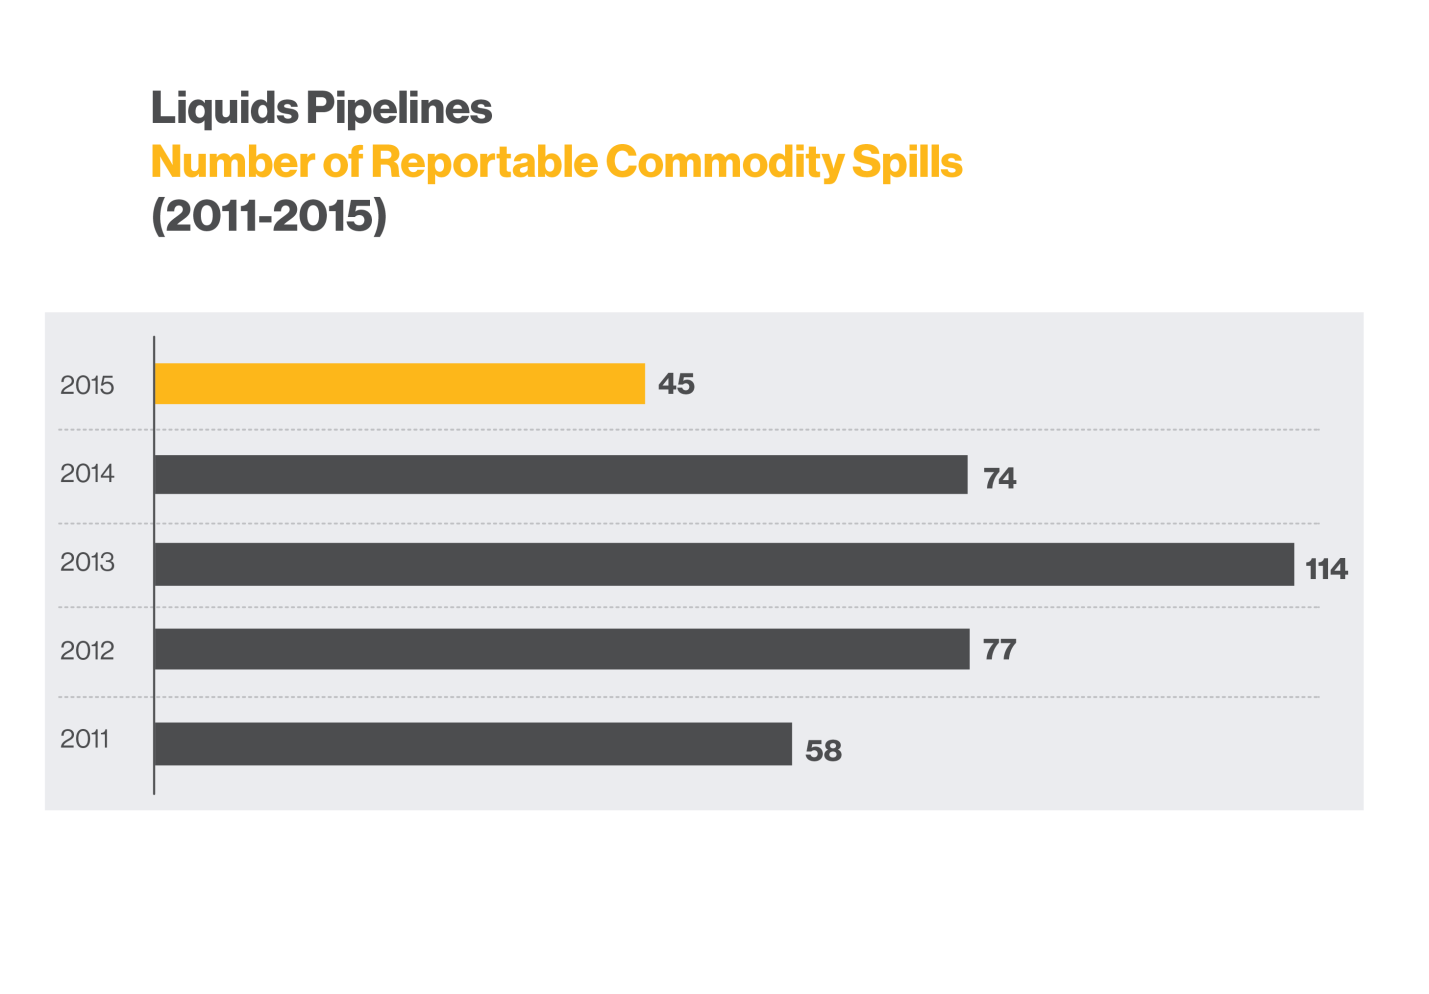 lp_Number_of_Reportable_Commodity_Spills